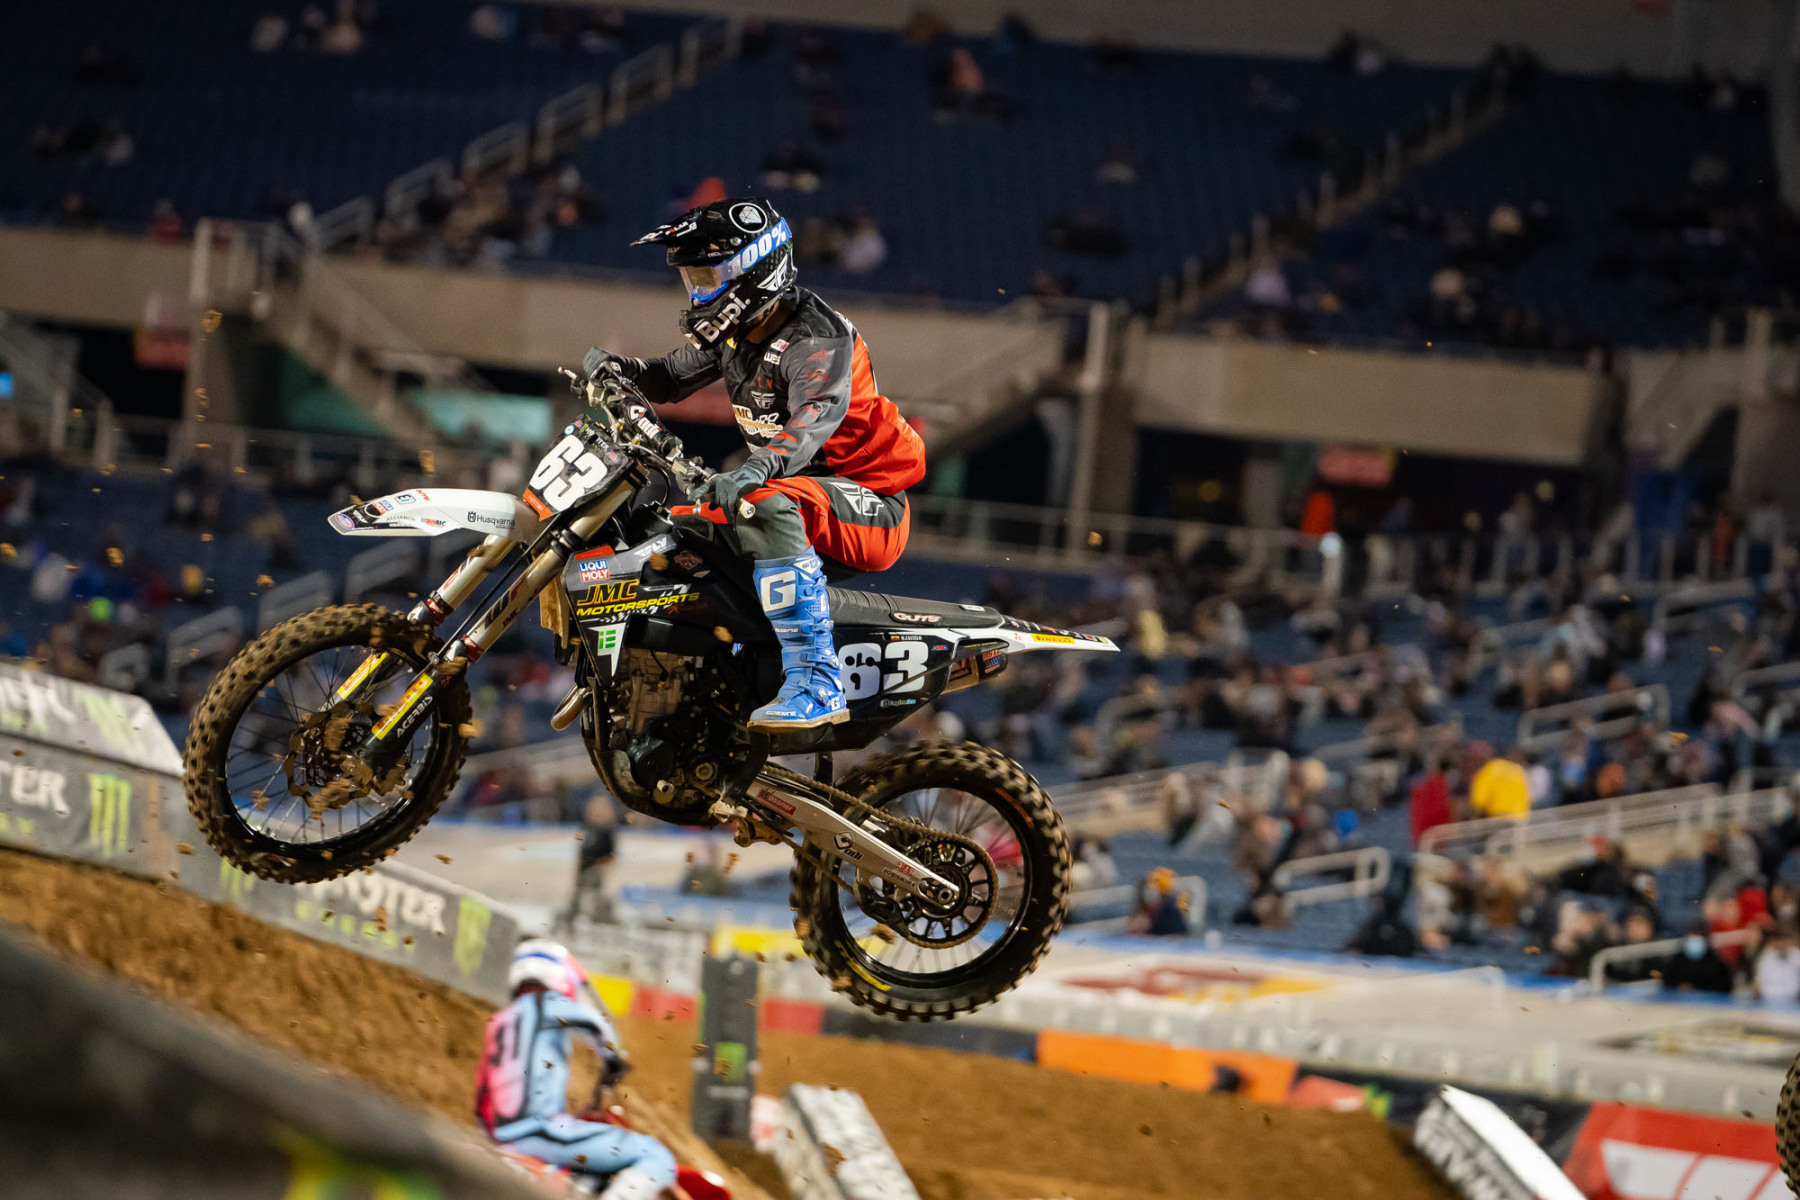 2021-ORLANDO-TWO-SUPERCROSS_KICKSTART_1530